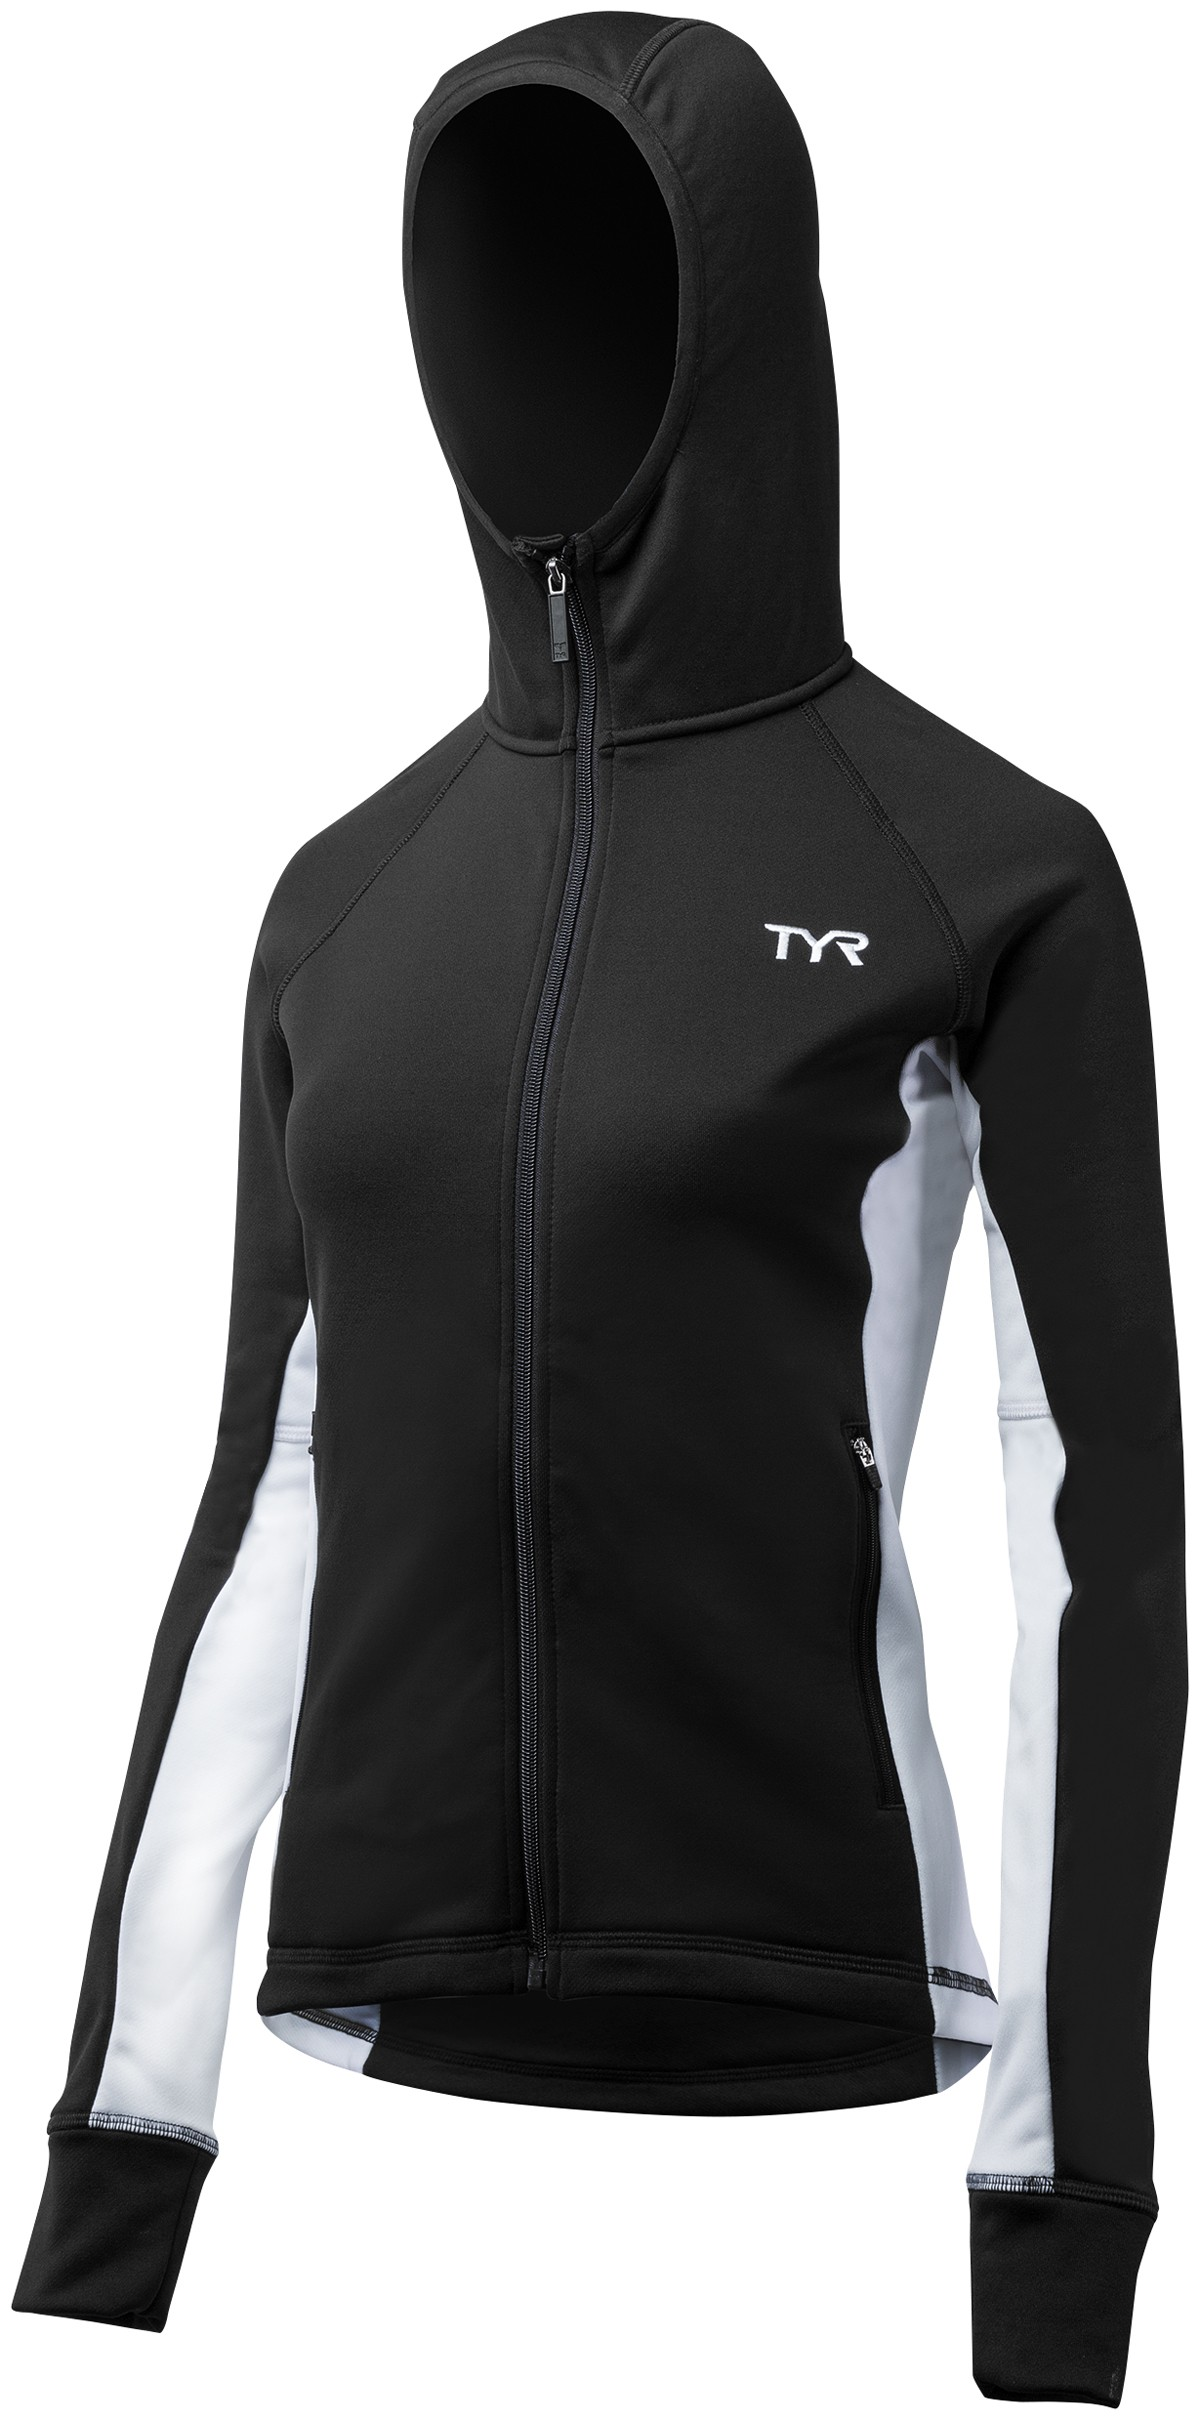 TYR Women's Victory Warm Up Jacket (Black/White (060))